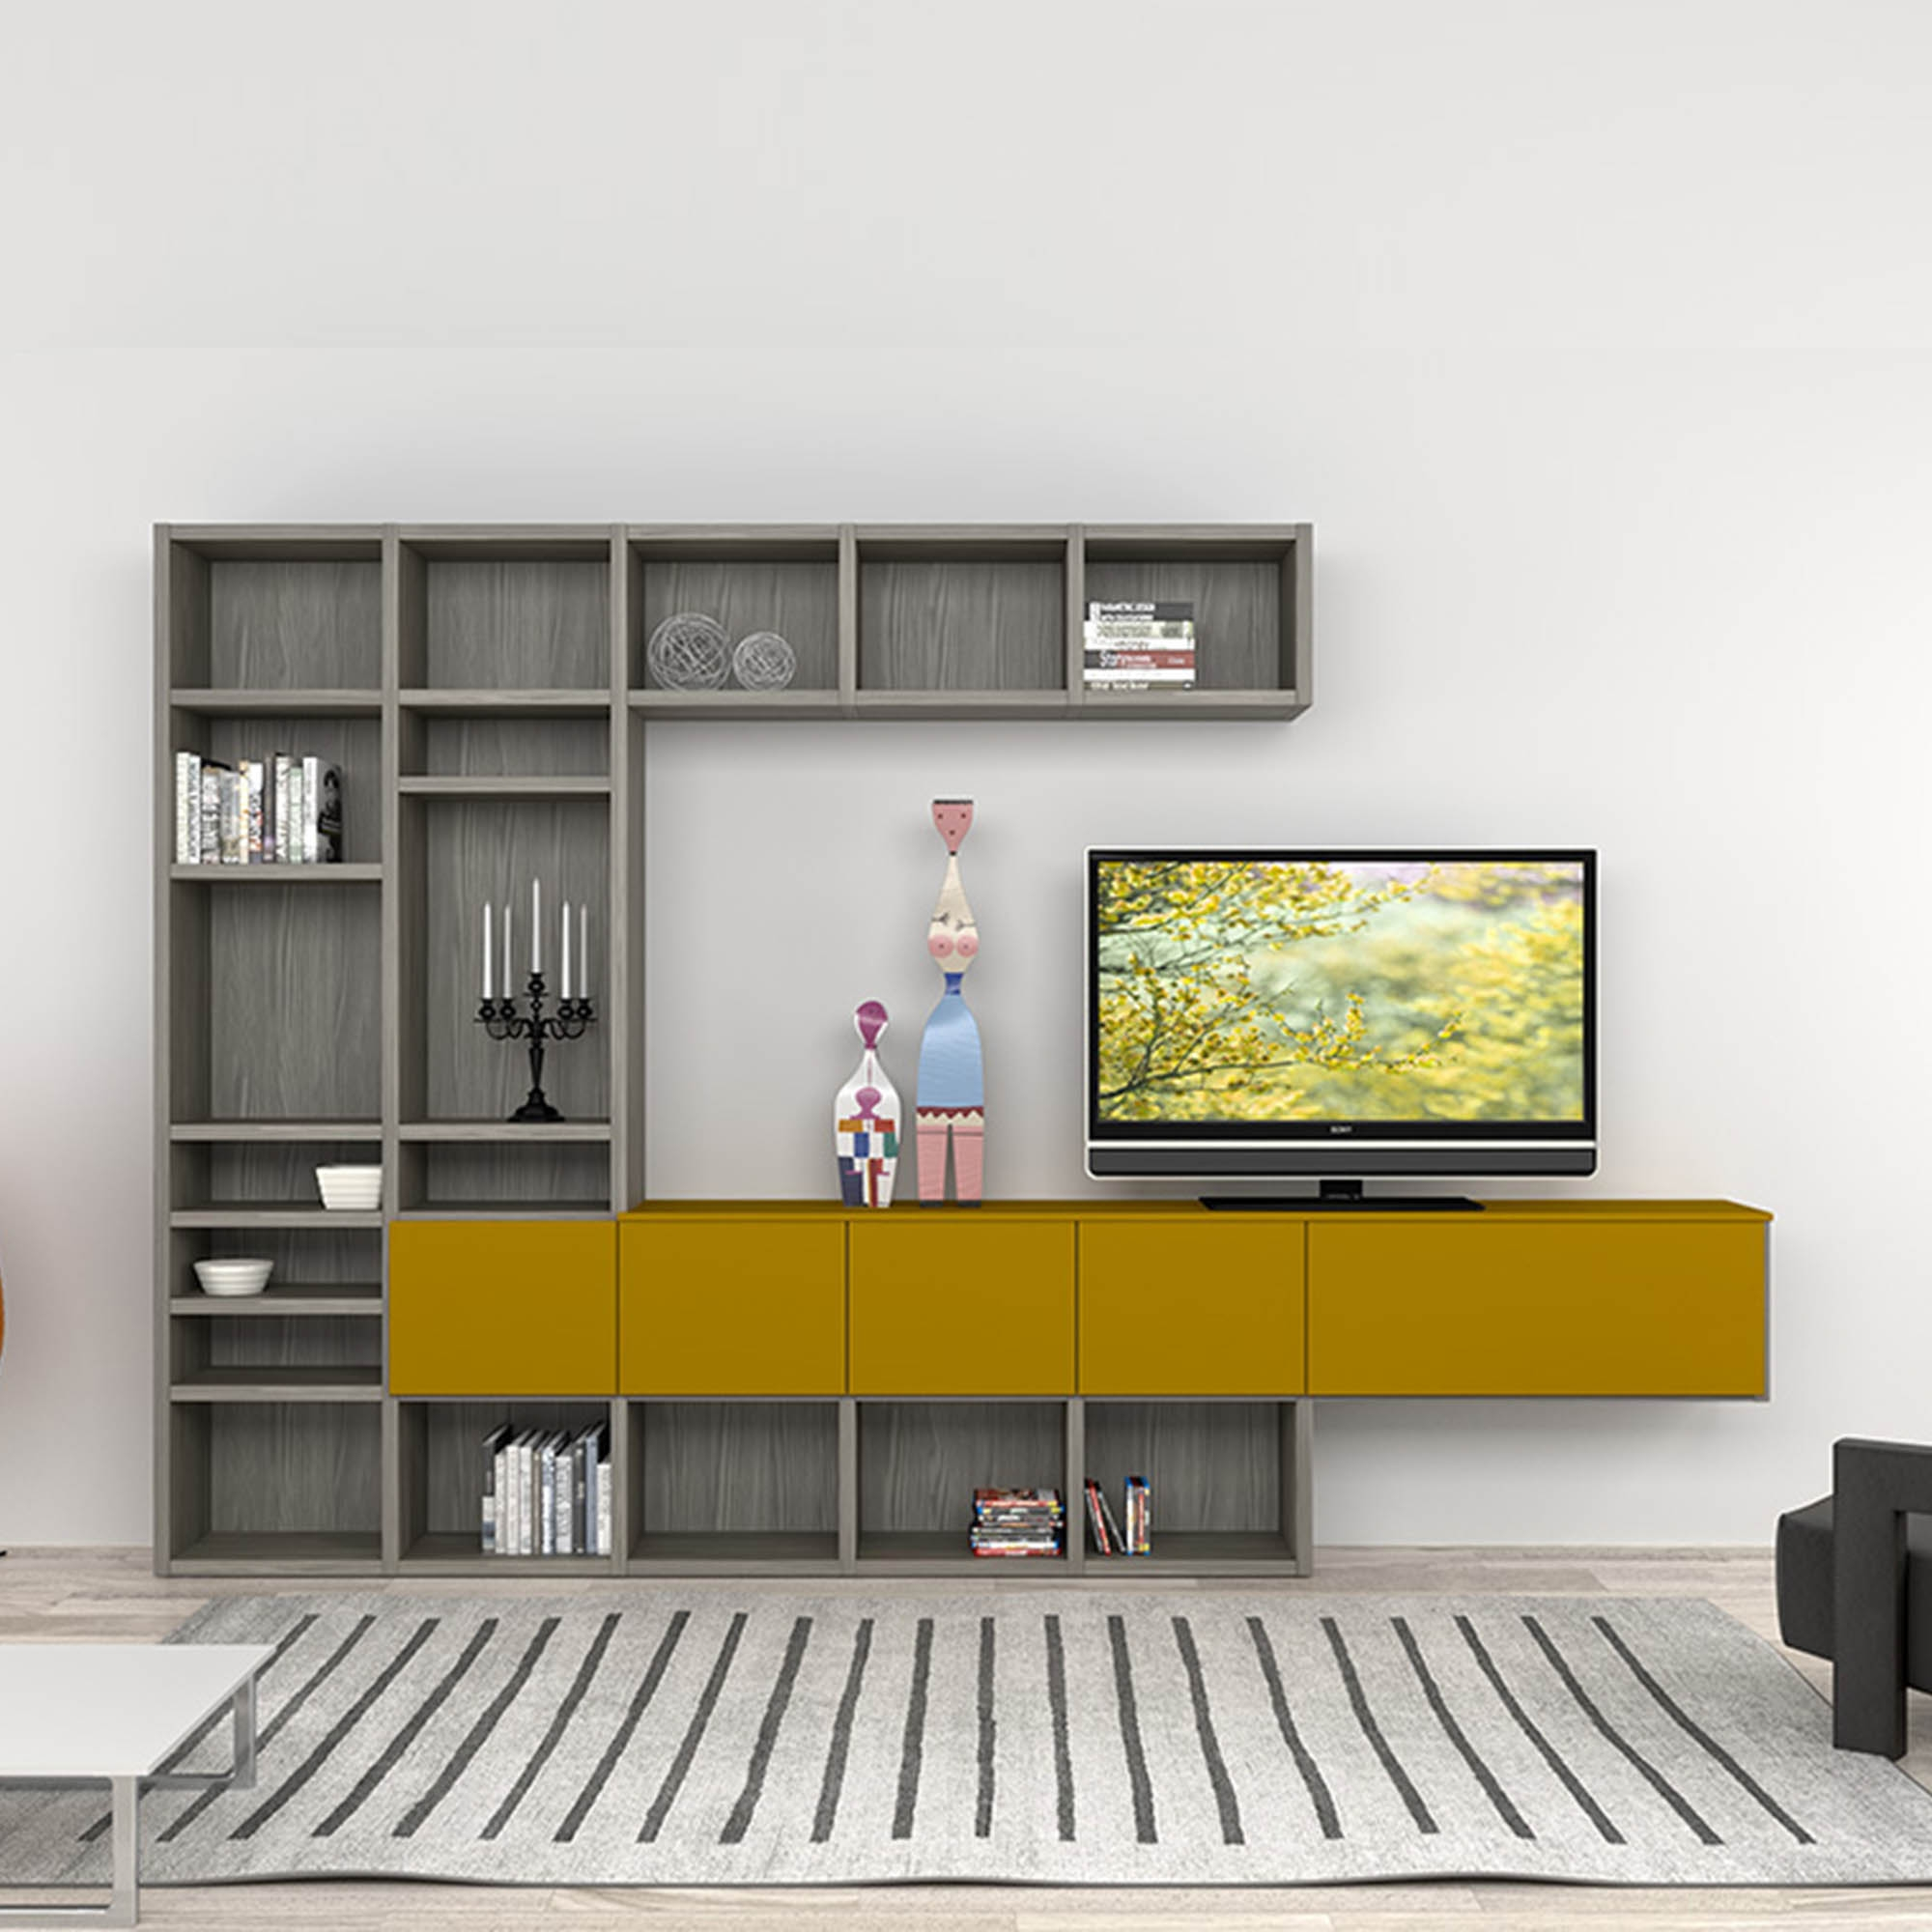 Modern Italian Tv Stand In Composition Of Grey And Mustard Colours Throughout Bespoke Tv Stand (#12 of 15)